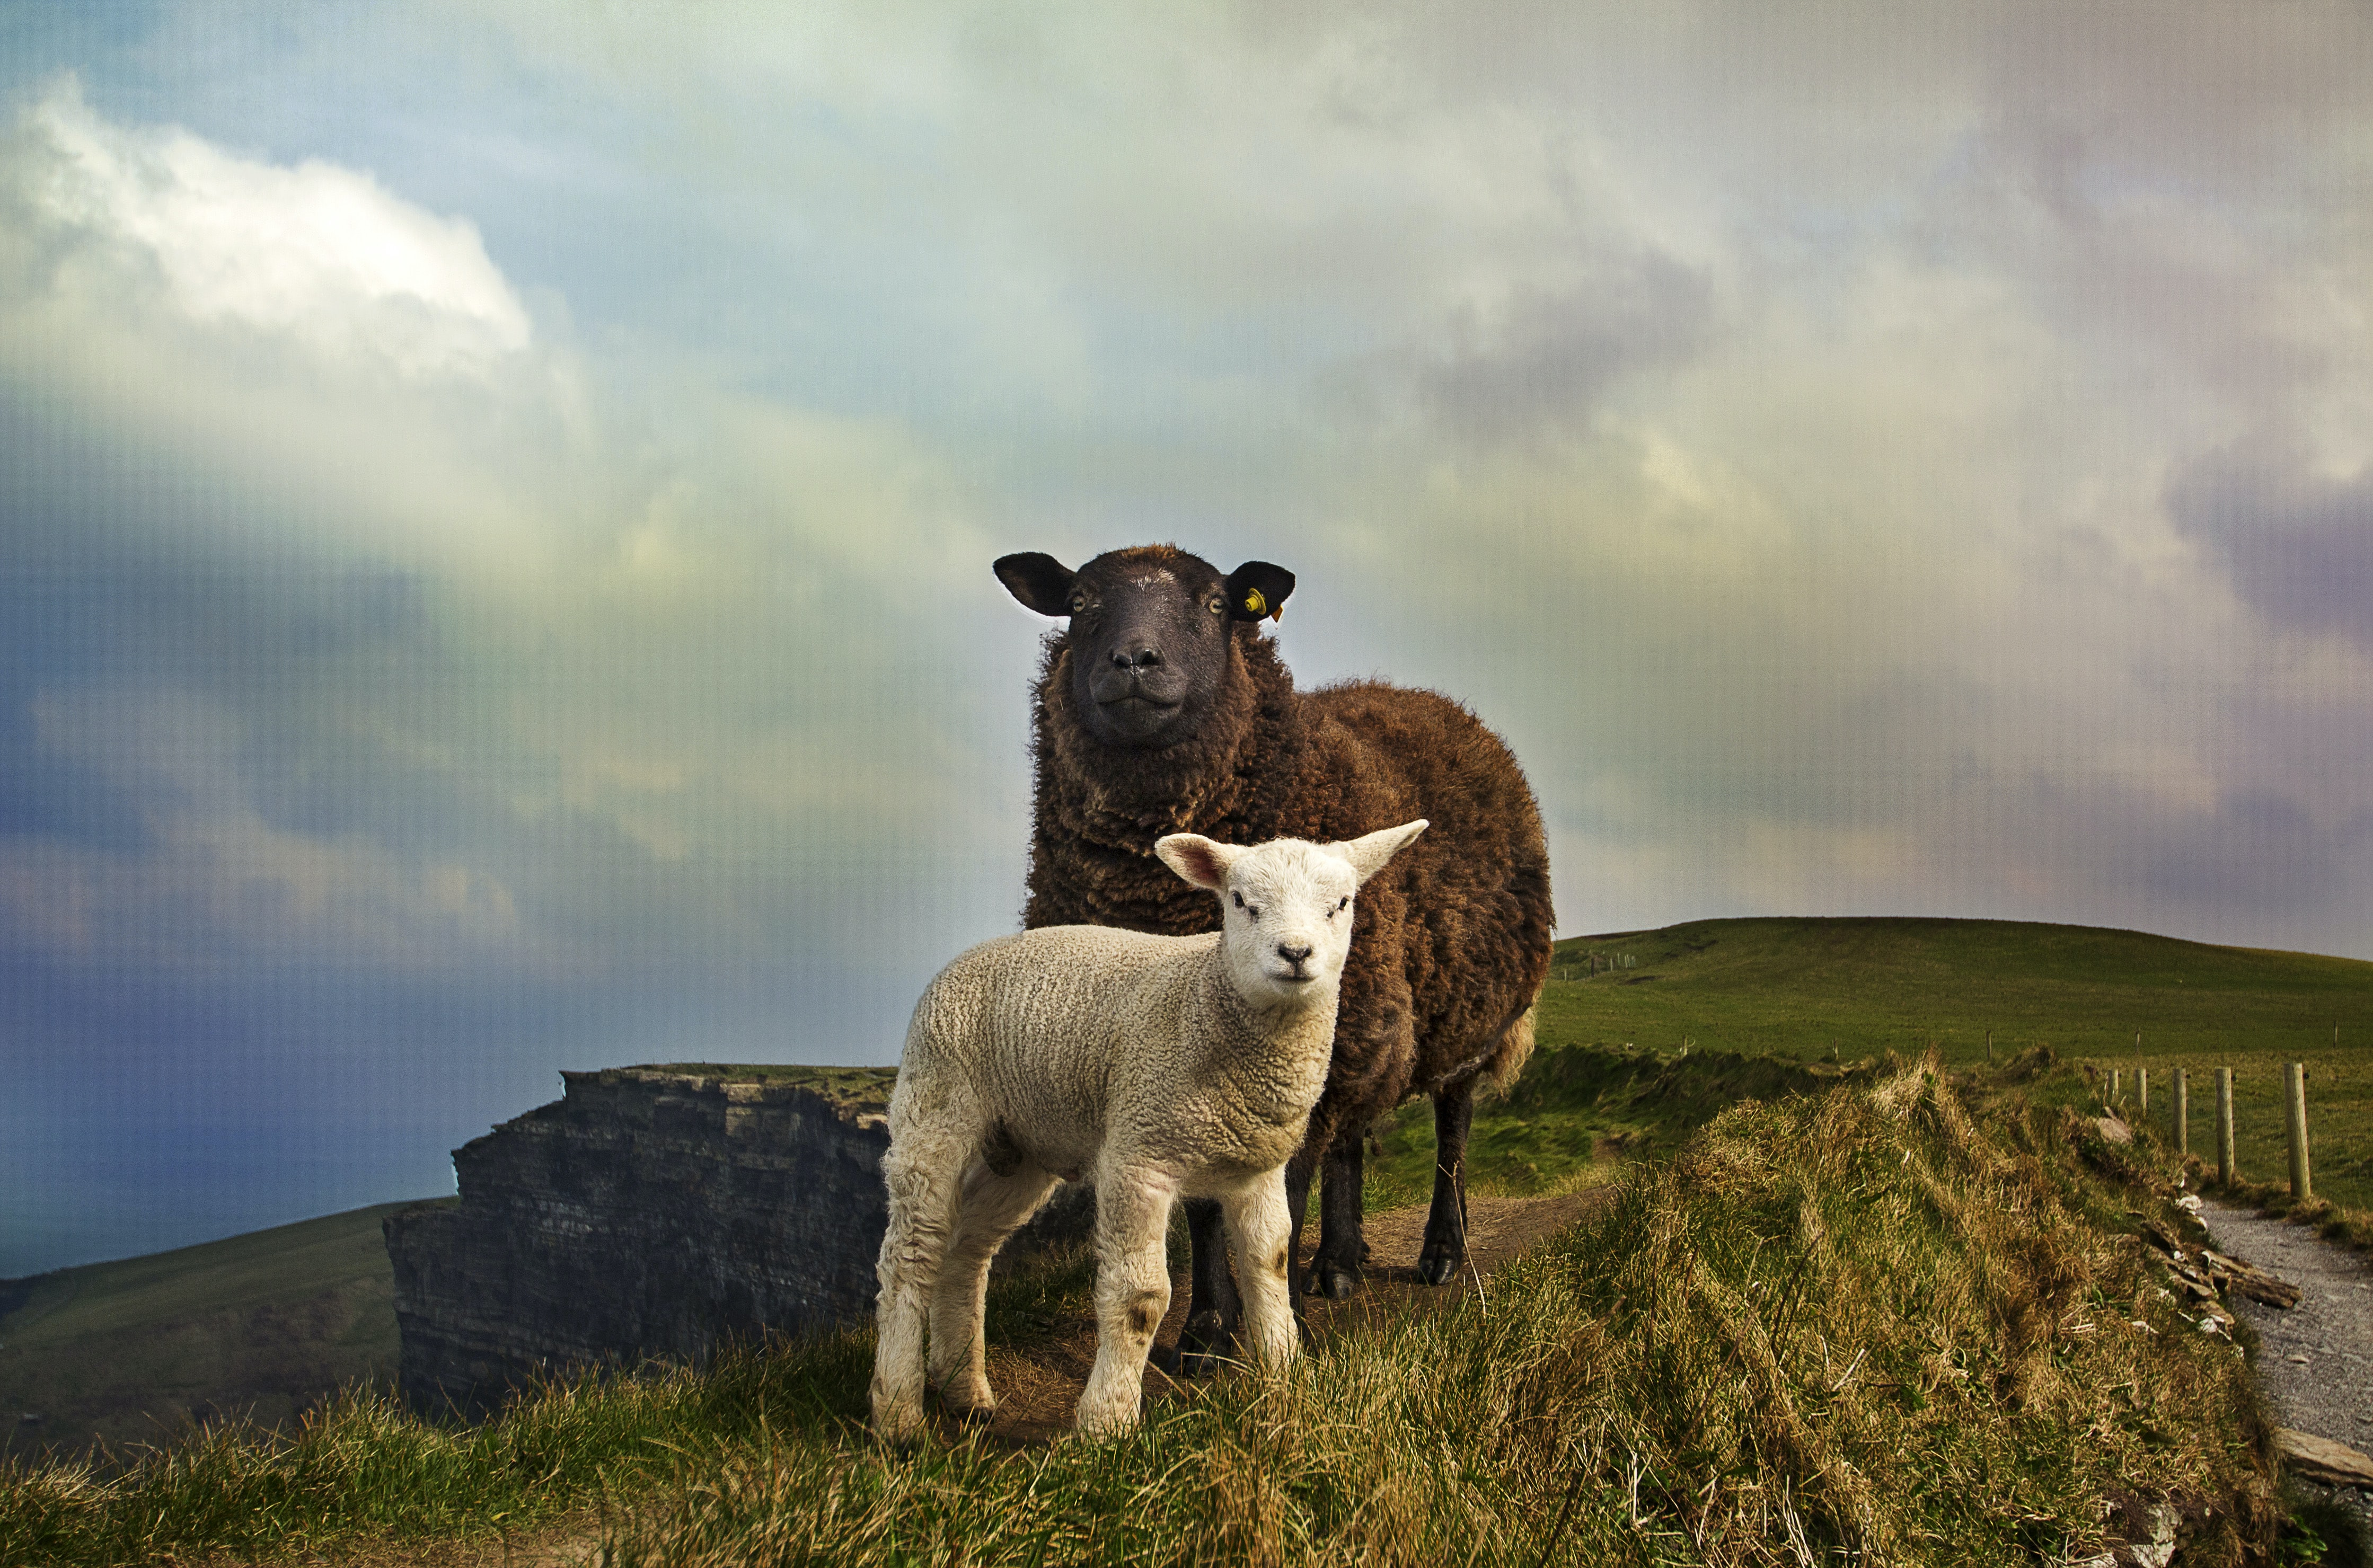 Brown sheep and white lamb stand on grassy hillside